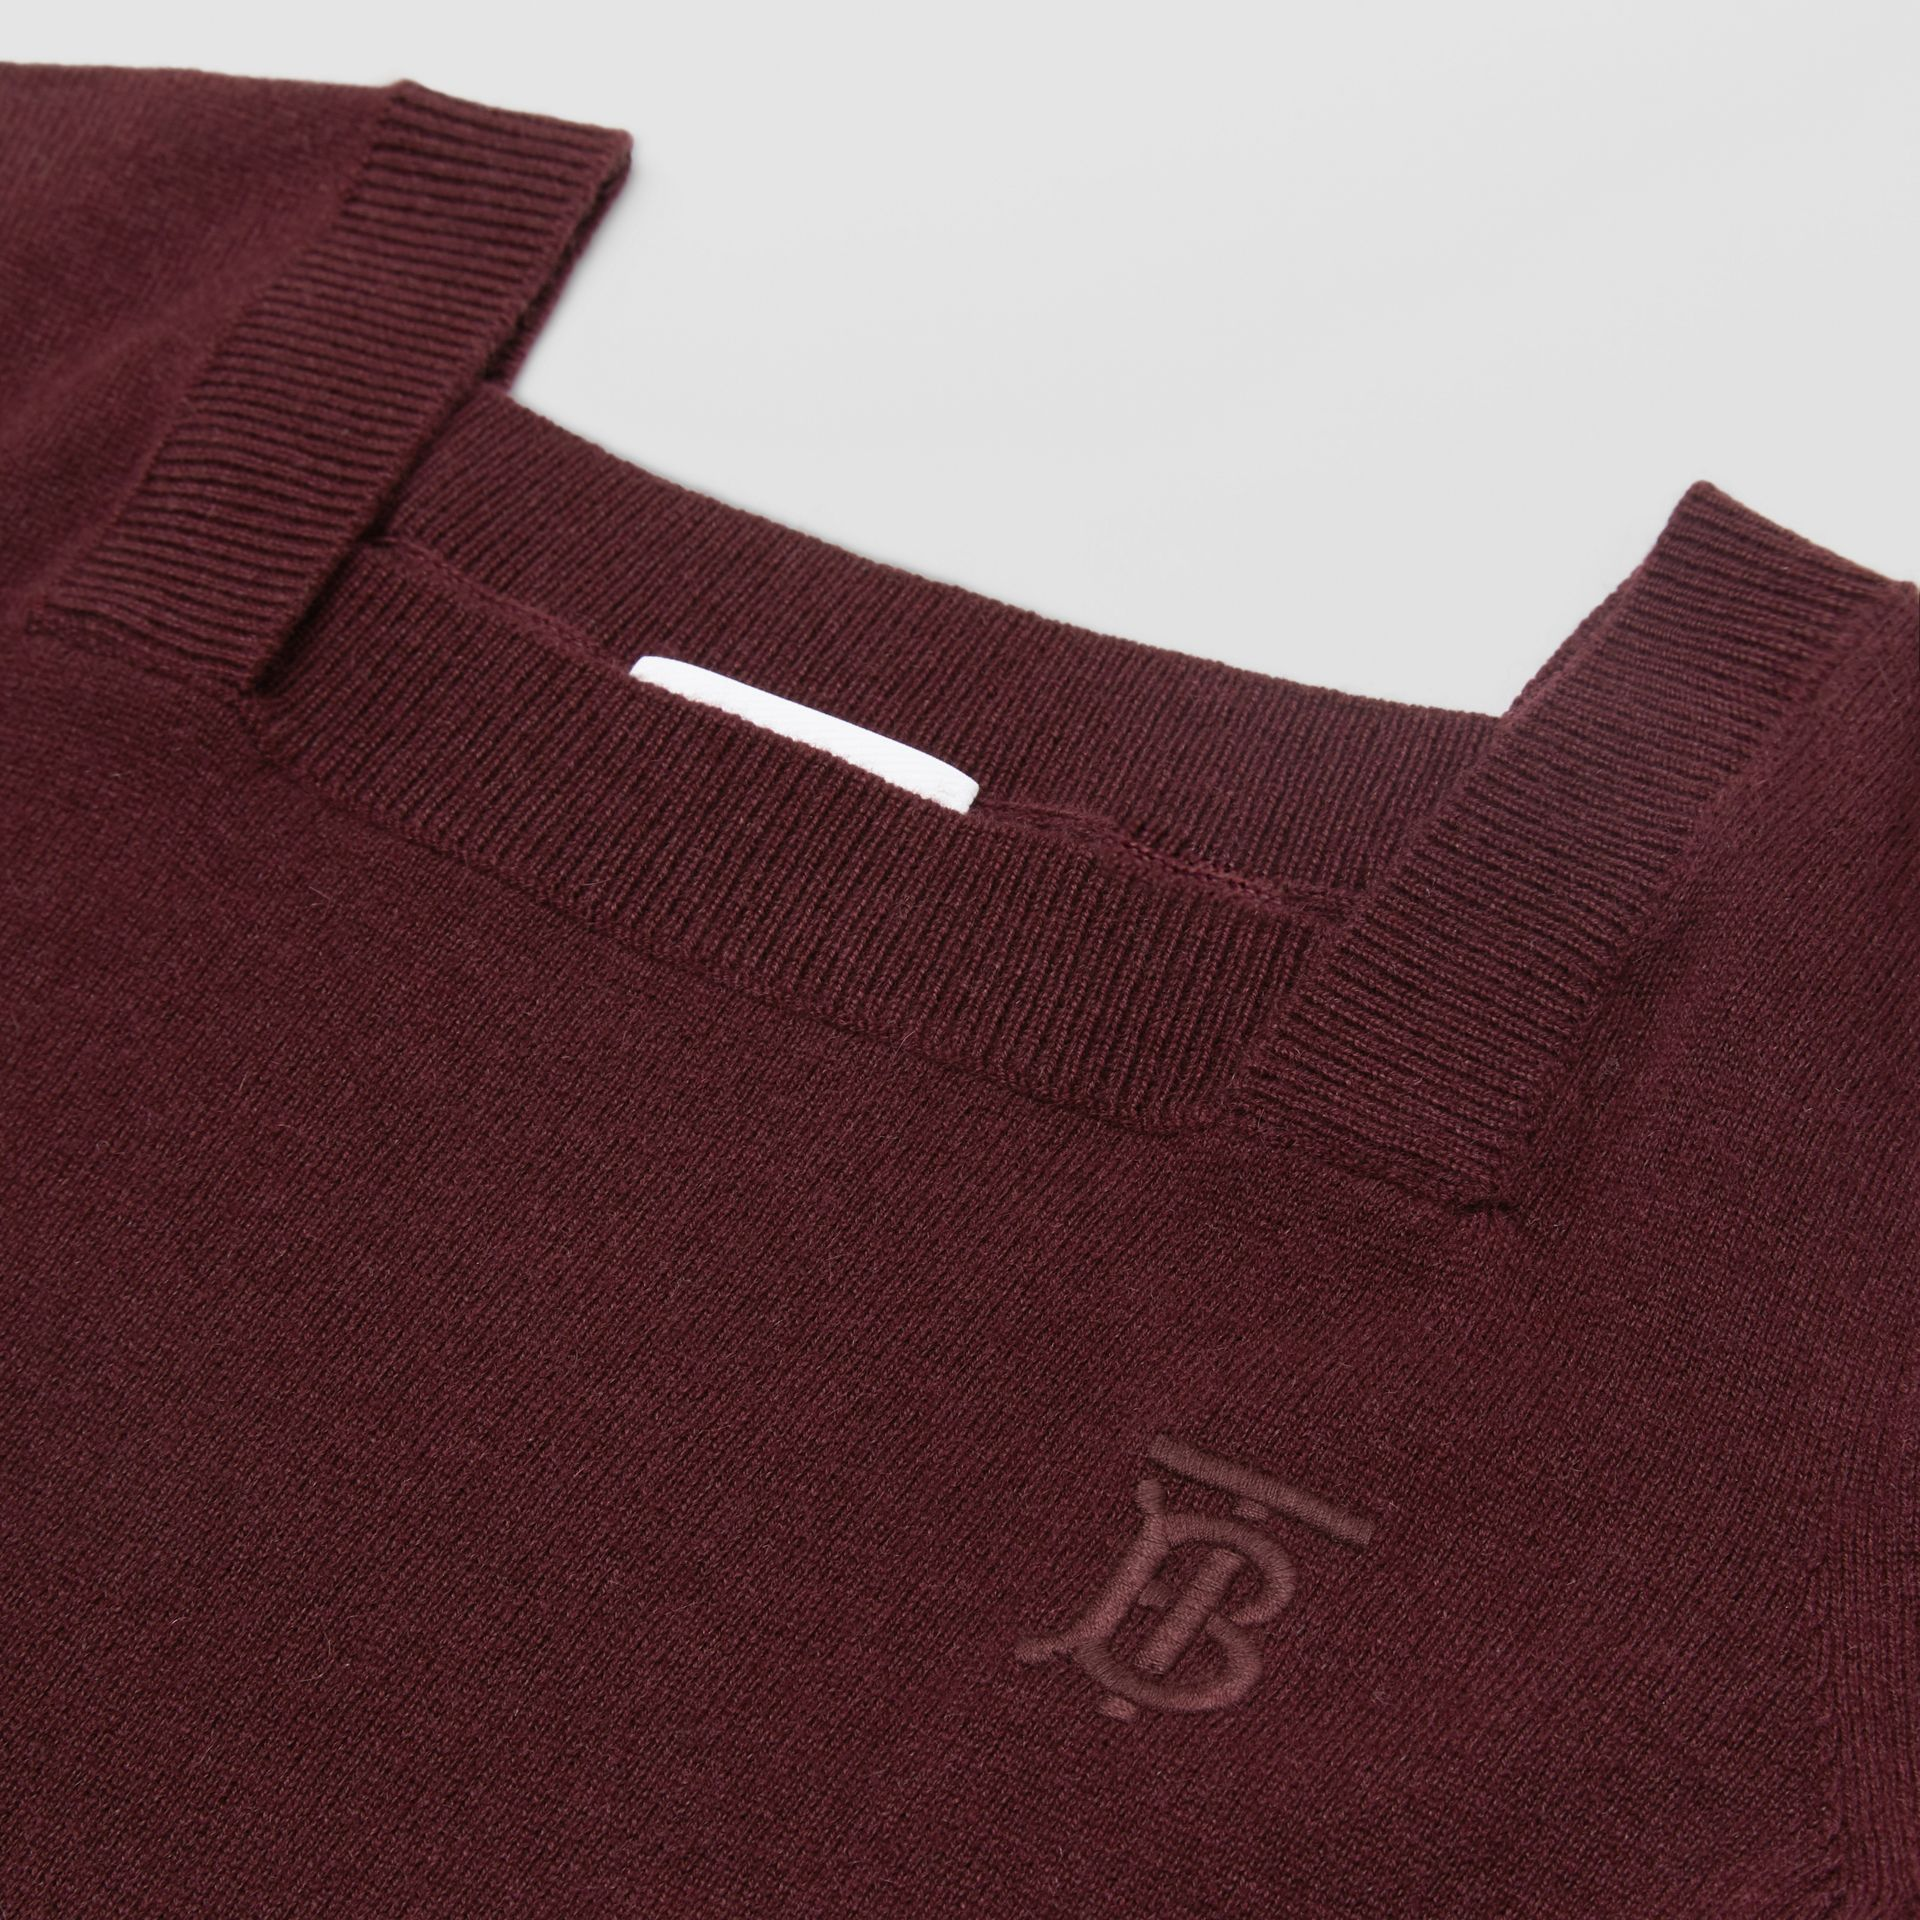 Monogram Motif Cashmere Sweater Dress in Burgundy | Burberry United Kingdom - gallery image 1